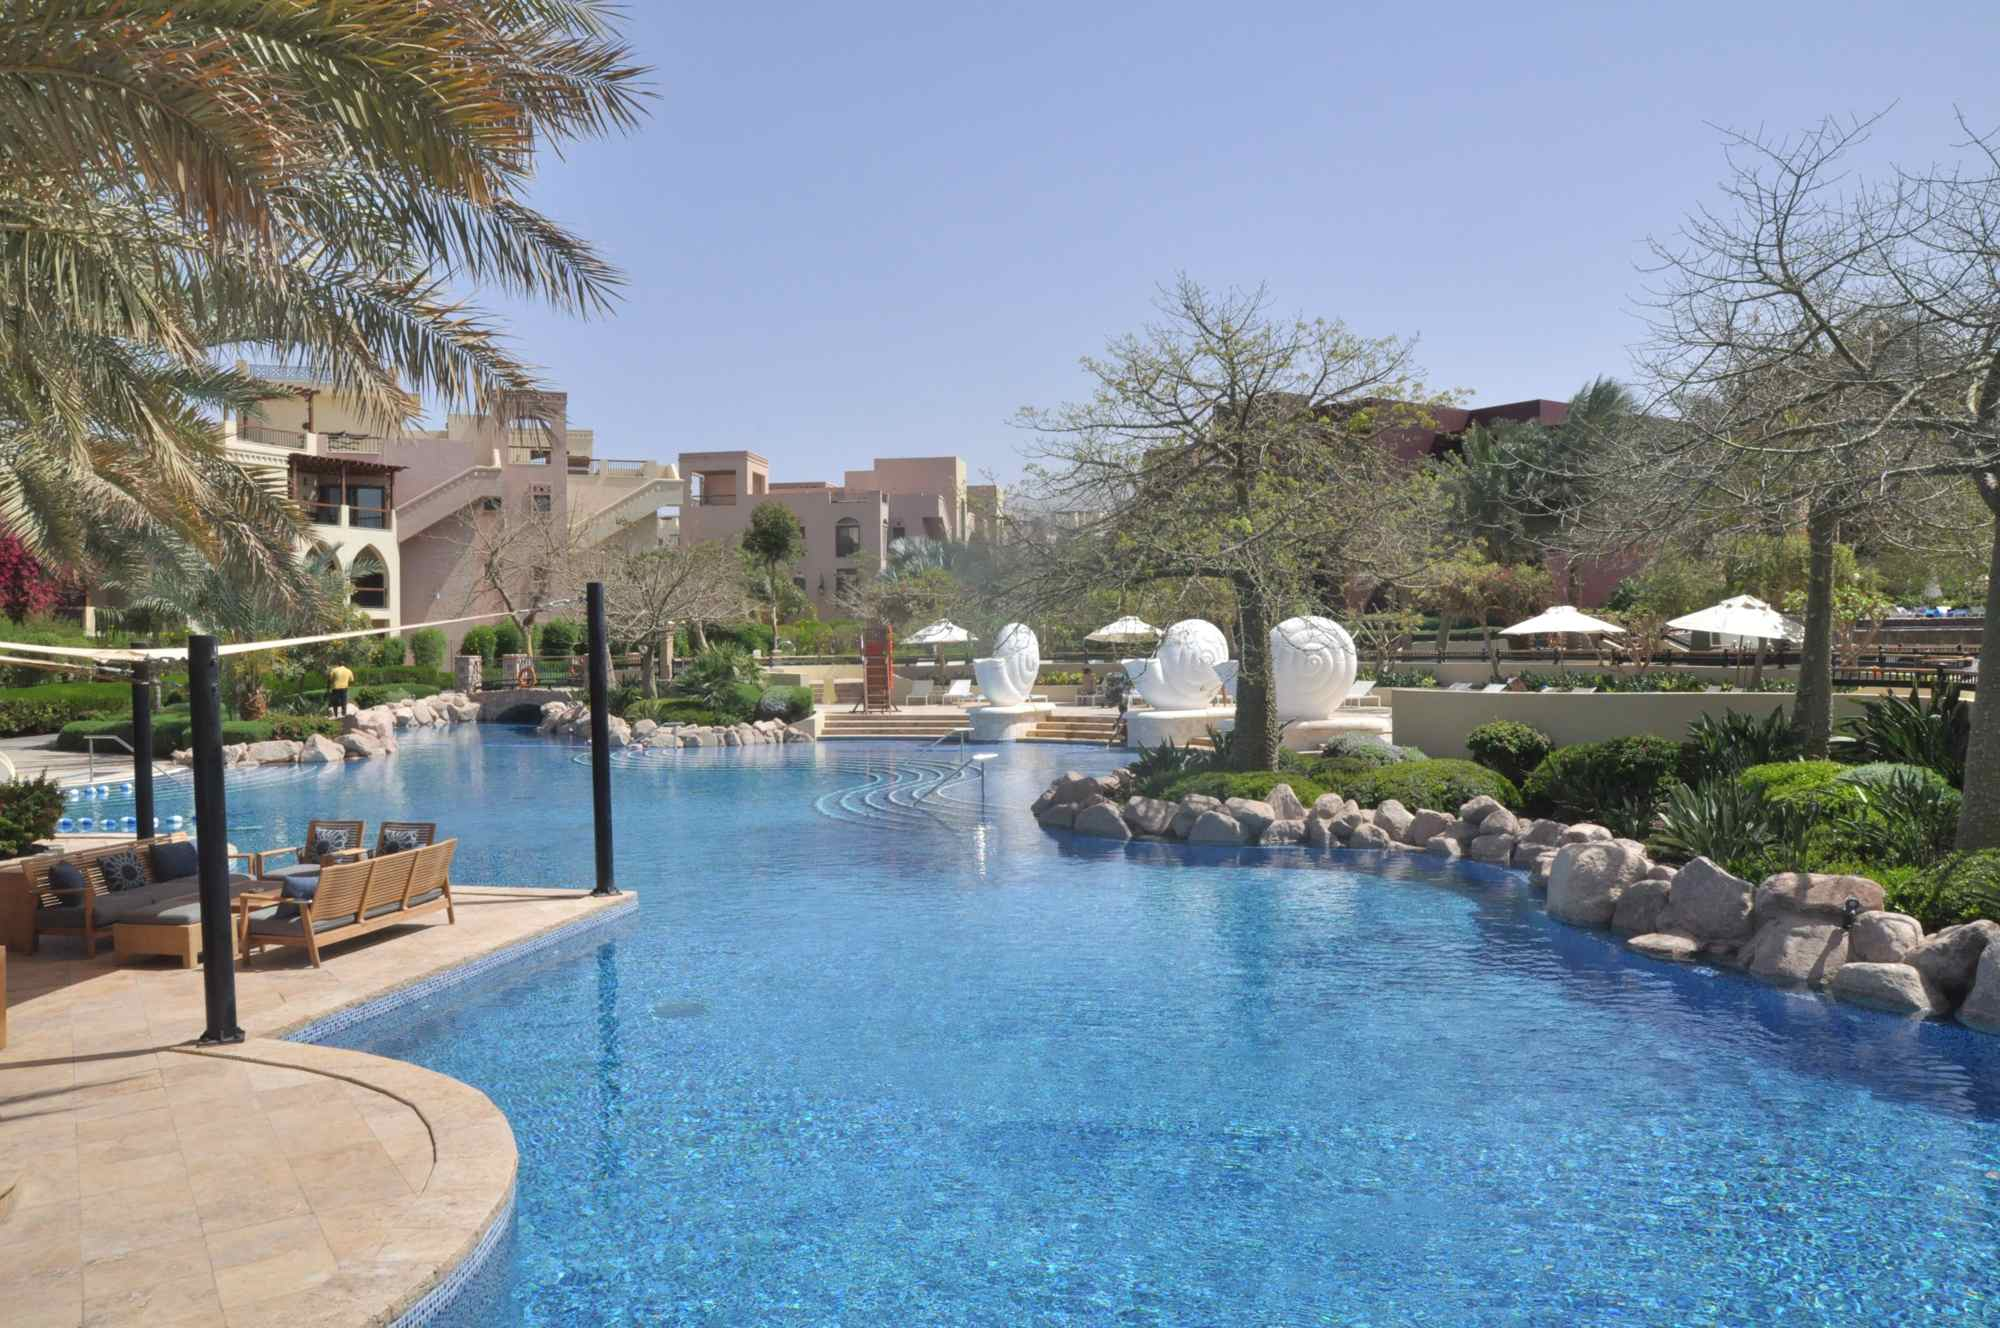 Bassins aquatiques au Movenpick Tala Bay